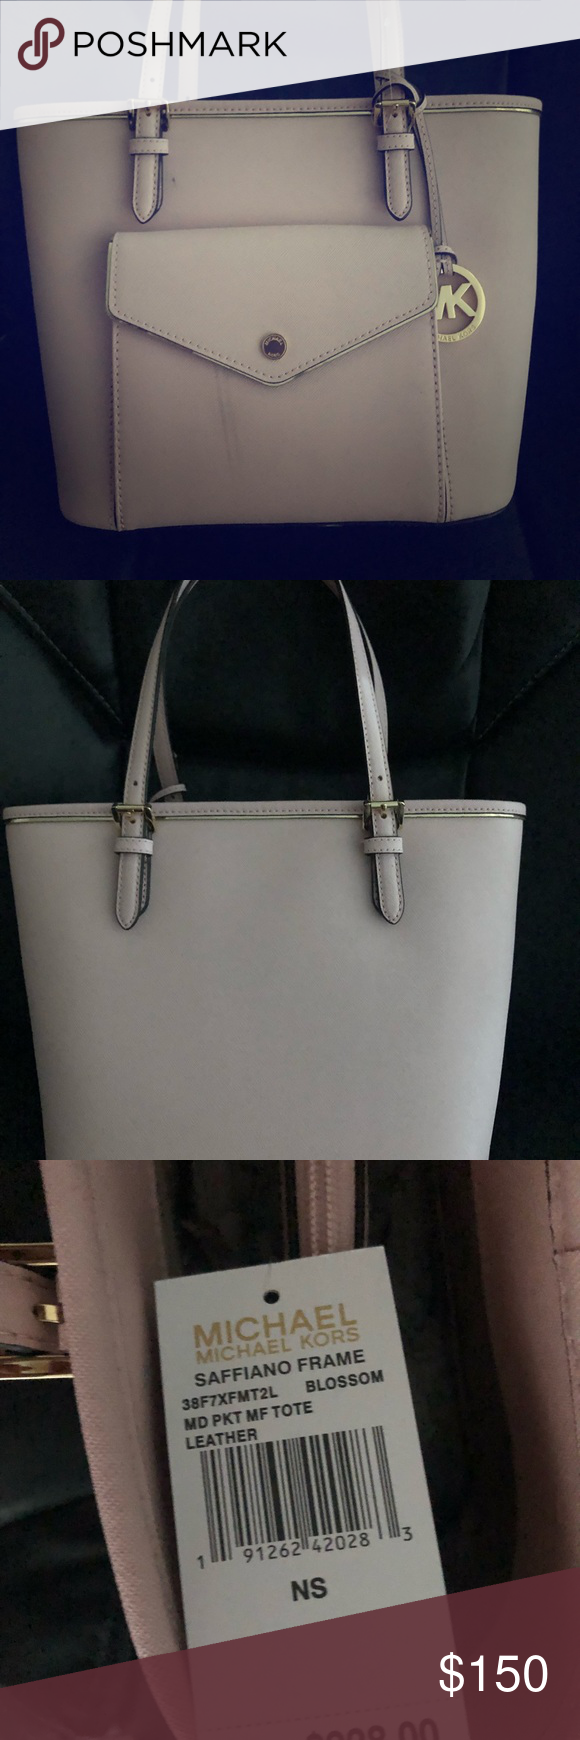 Blush brand new Michael kors purse. Brand new blush Michael Kira purse. It  has a slight stain in the front but it can easily be fix. Michael Kors Bags  ... 07901f2d3c